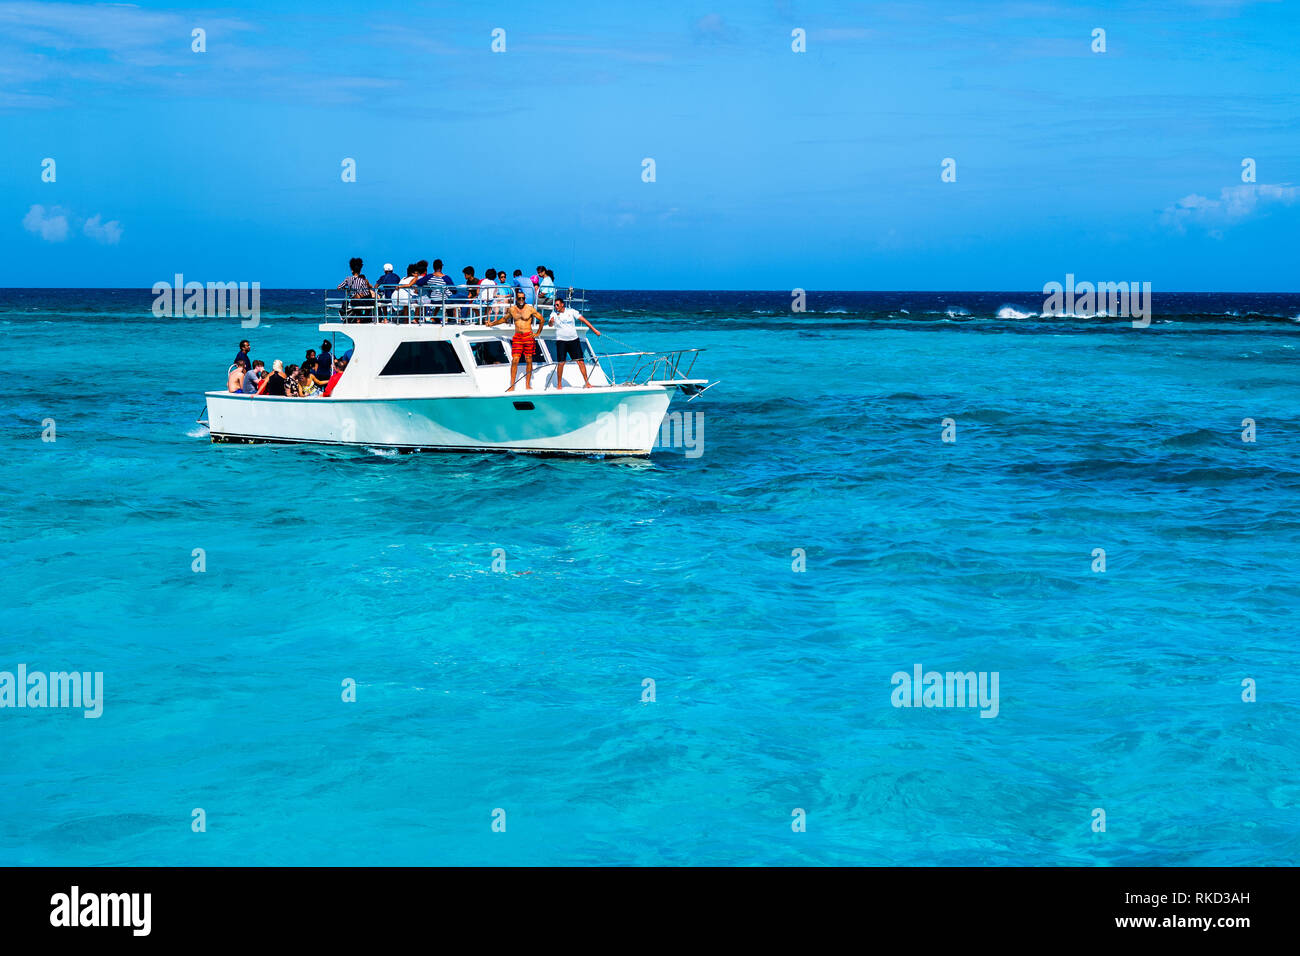 Boat with tourist arriving at Stingray City at Grand Cayman in the Caribbean. - Stock Image